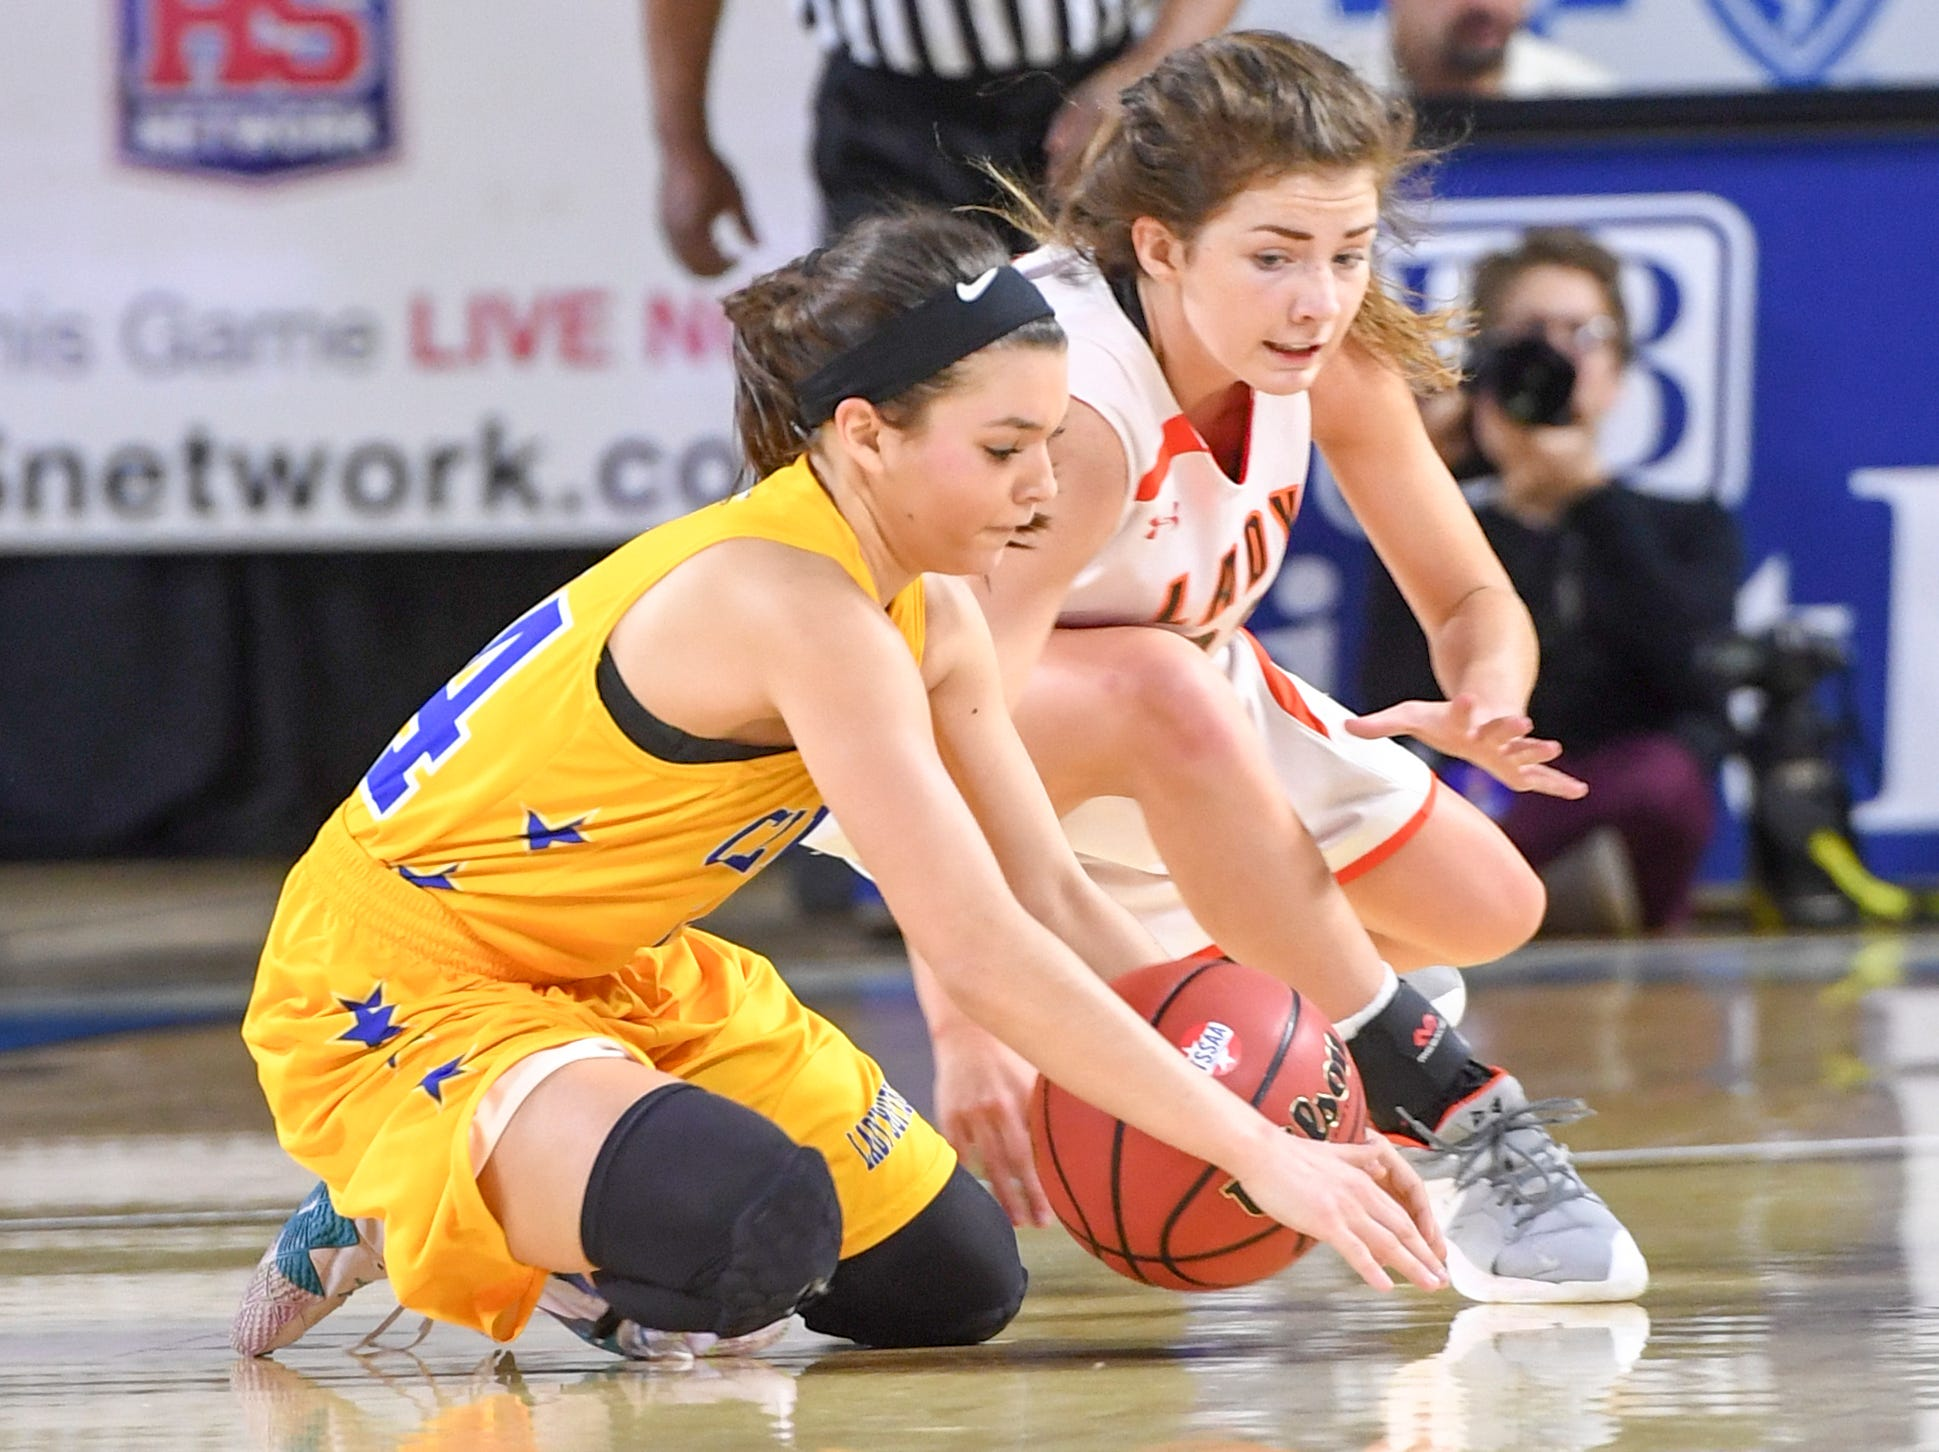 Greenfield's Edie Darby (23) and Clarkrange's Kaylie Monday (24) fall to the ground to possess a loose ball during their Class A quarterfinal game, Thursday, March 7, 2019, in Murfreesboro.